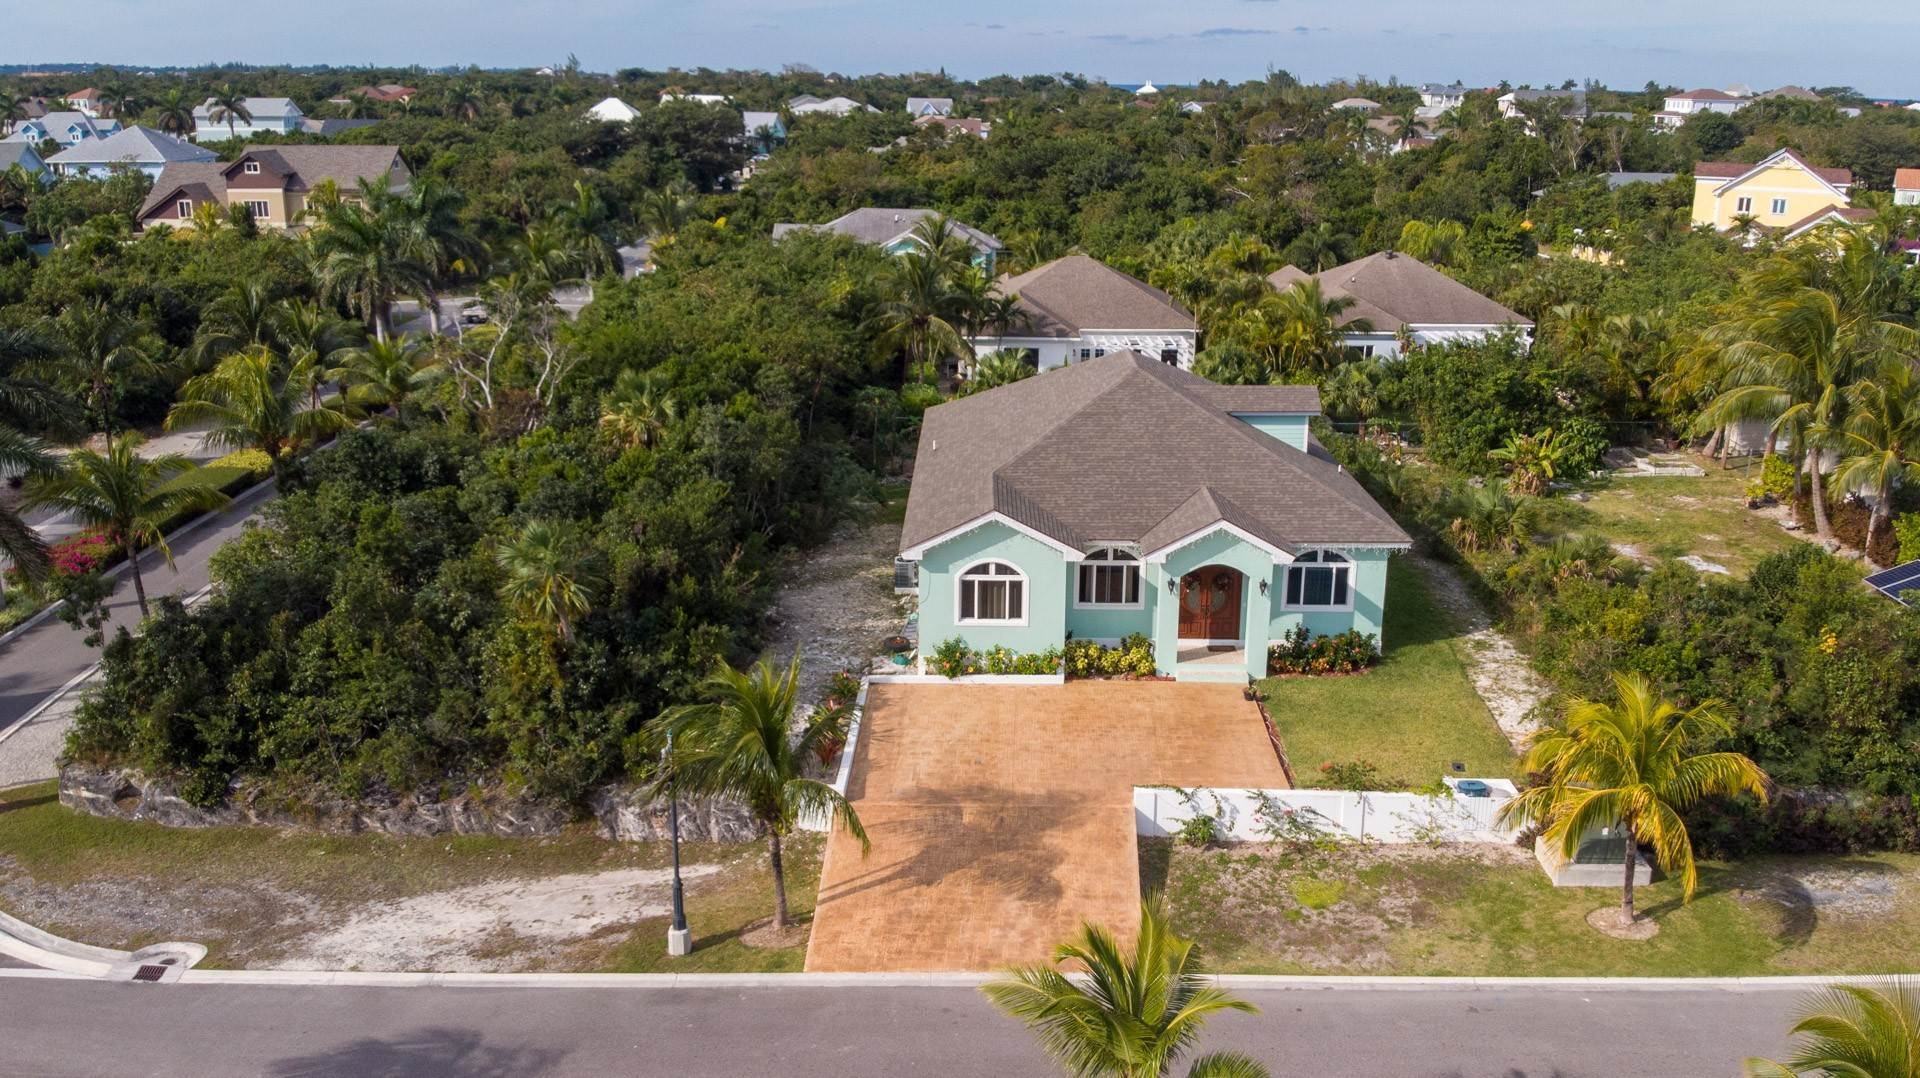 37. Single Family Homes for Sale at Villa Greenway House for Sale - MLS 41427 Charlotteville, Nassau And Paradise Island, Bahamas